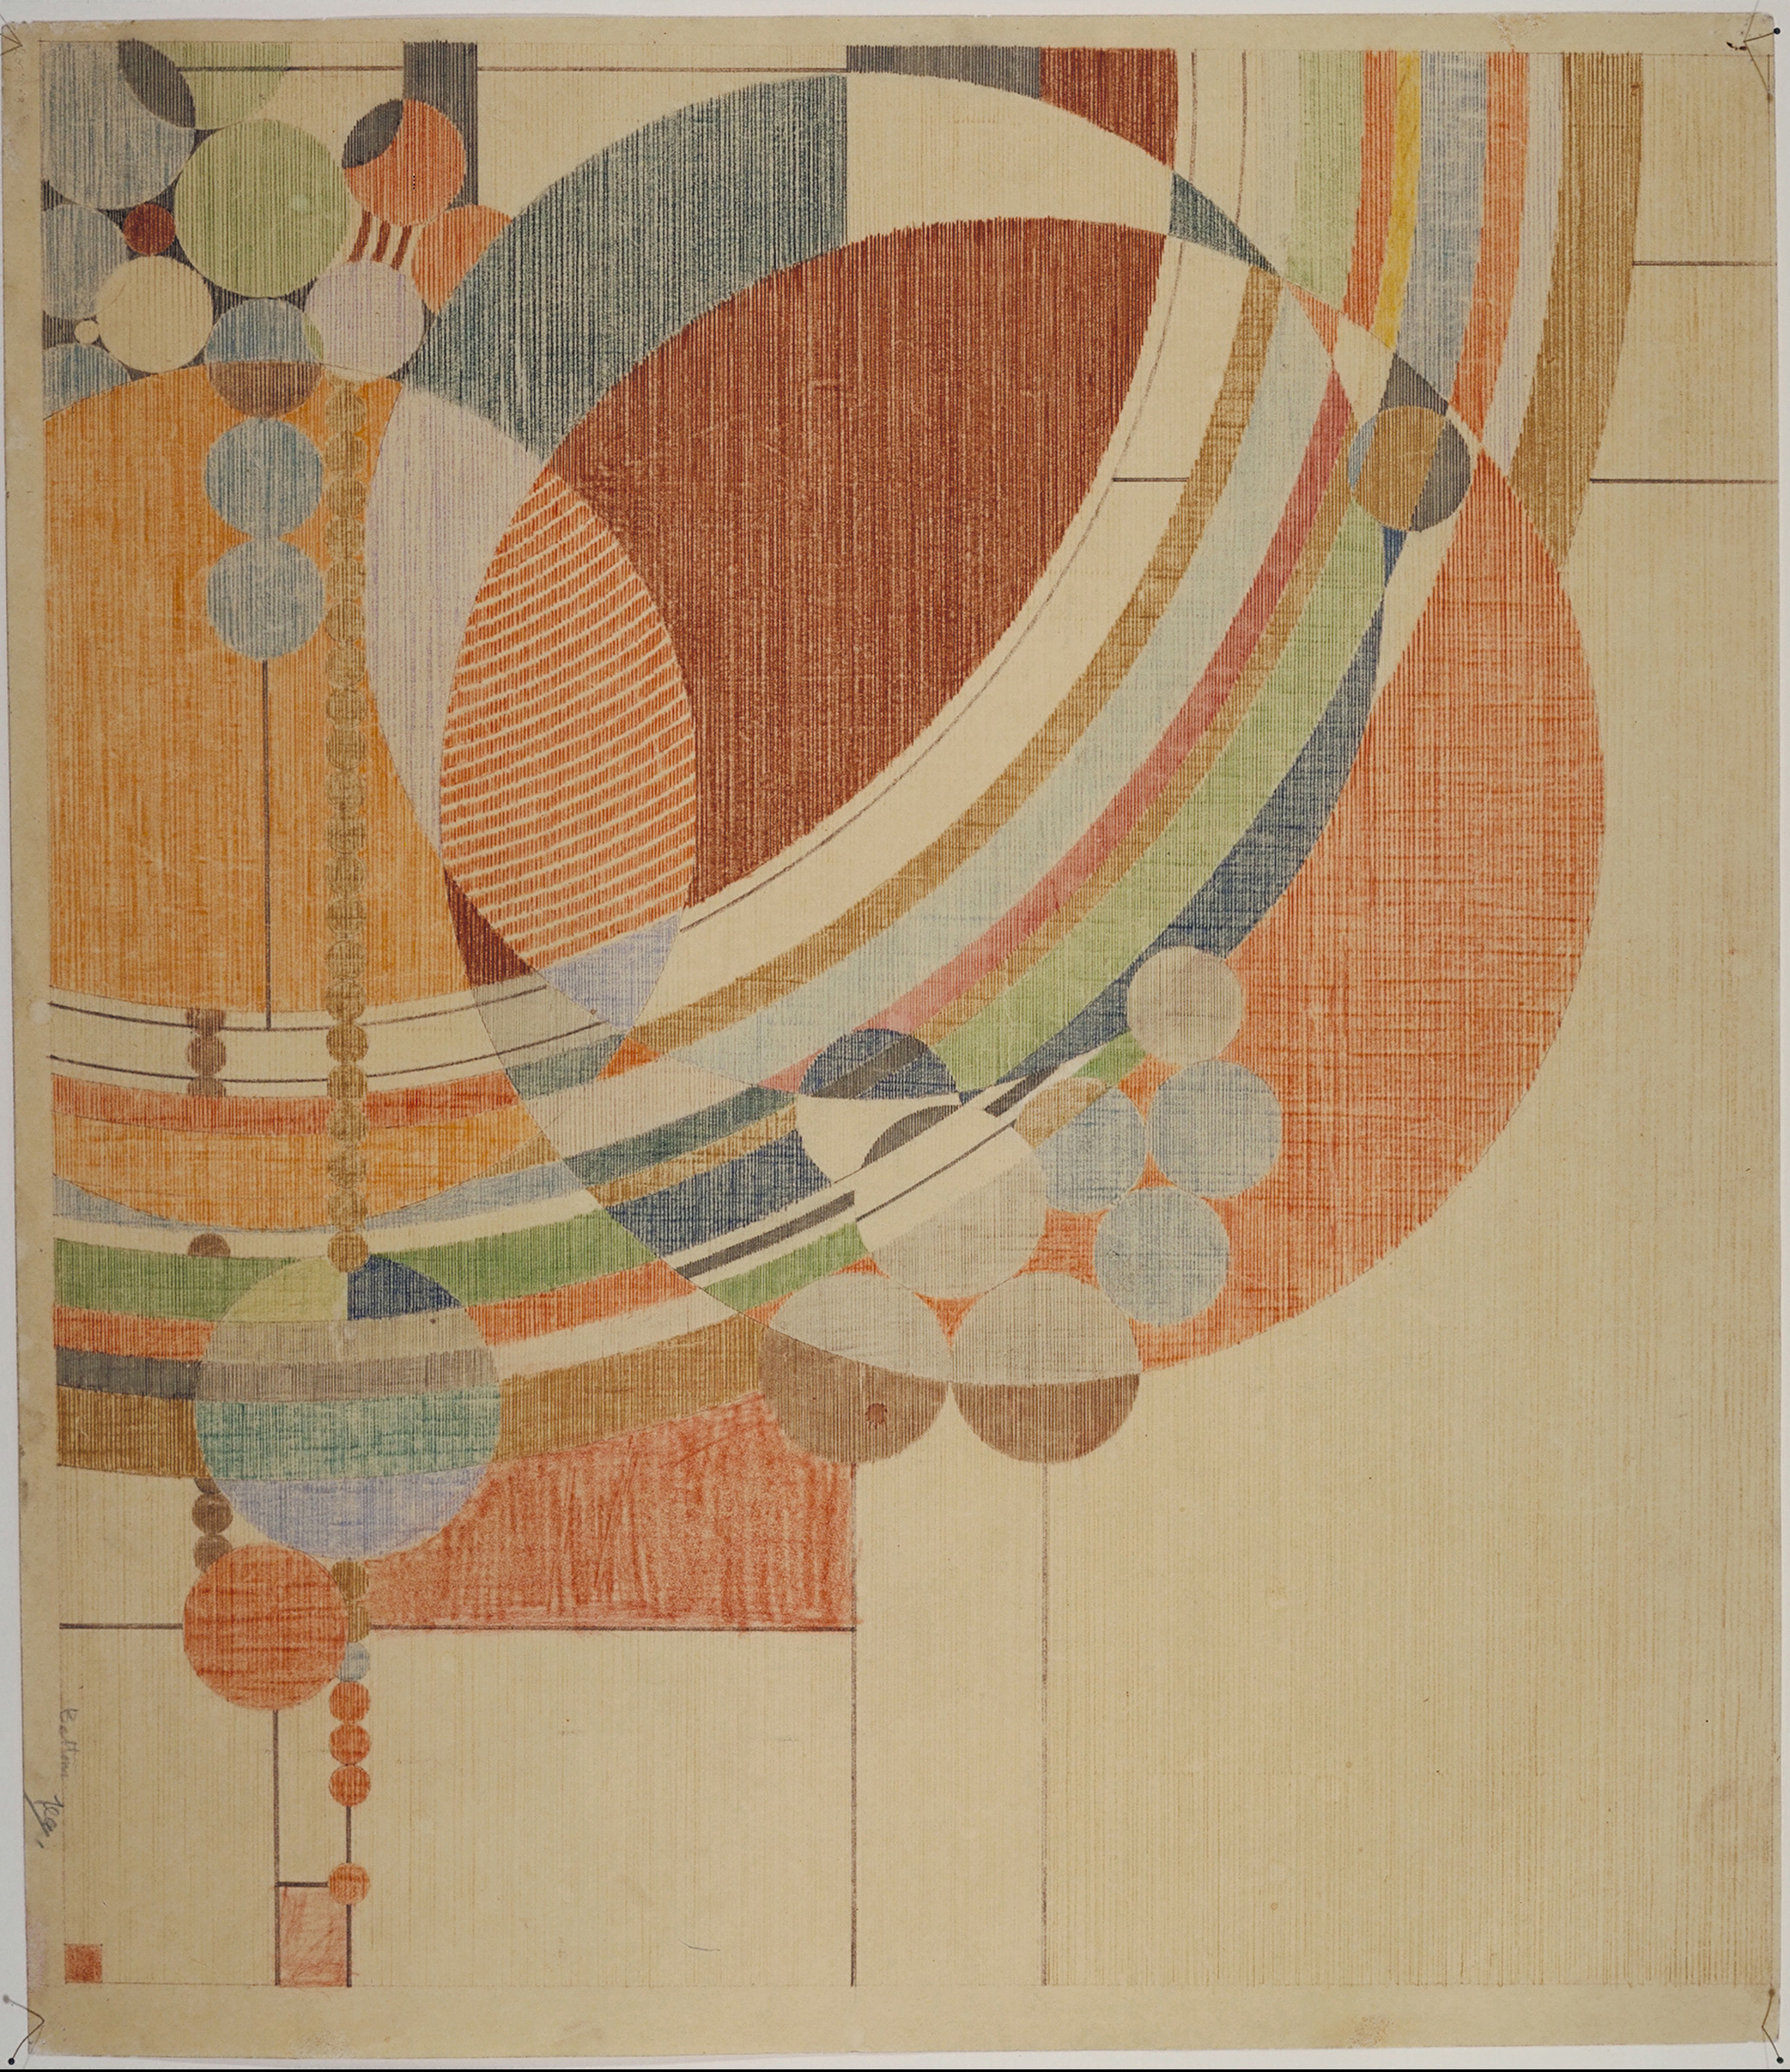 Frank Lloyd Wright (American, 1867–1959). March Balloons. 1955. Drawing based on a c. 1926 design for Liberty magazine. Colored pencil on paper.